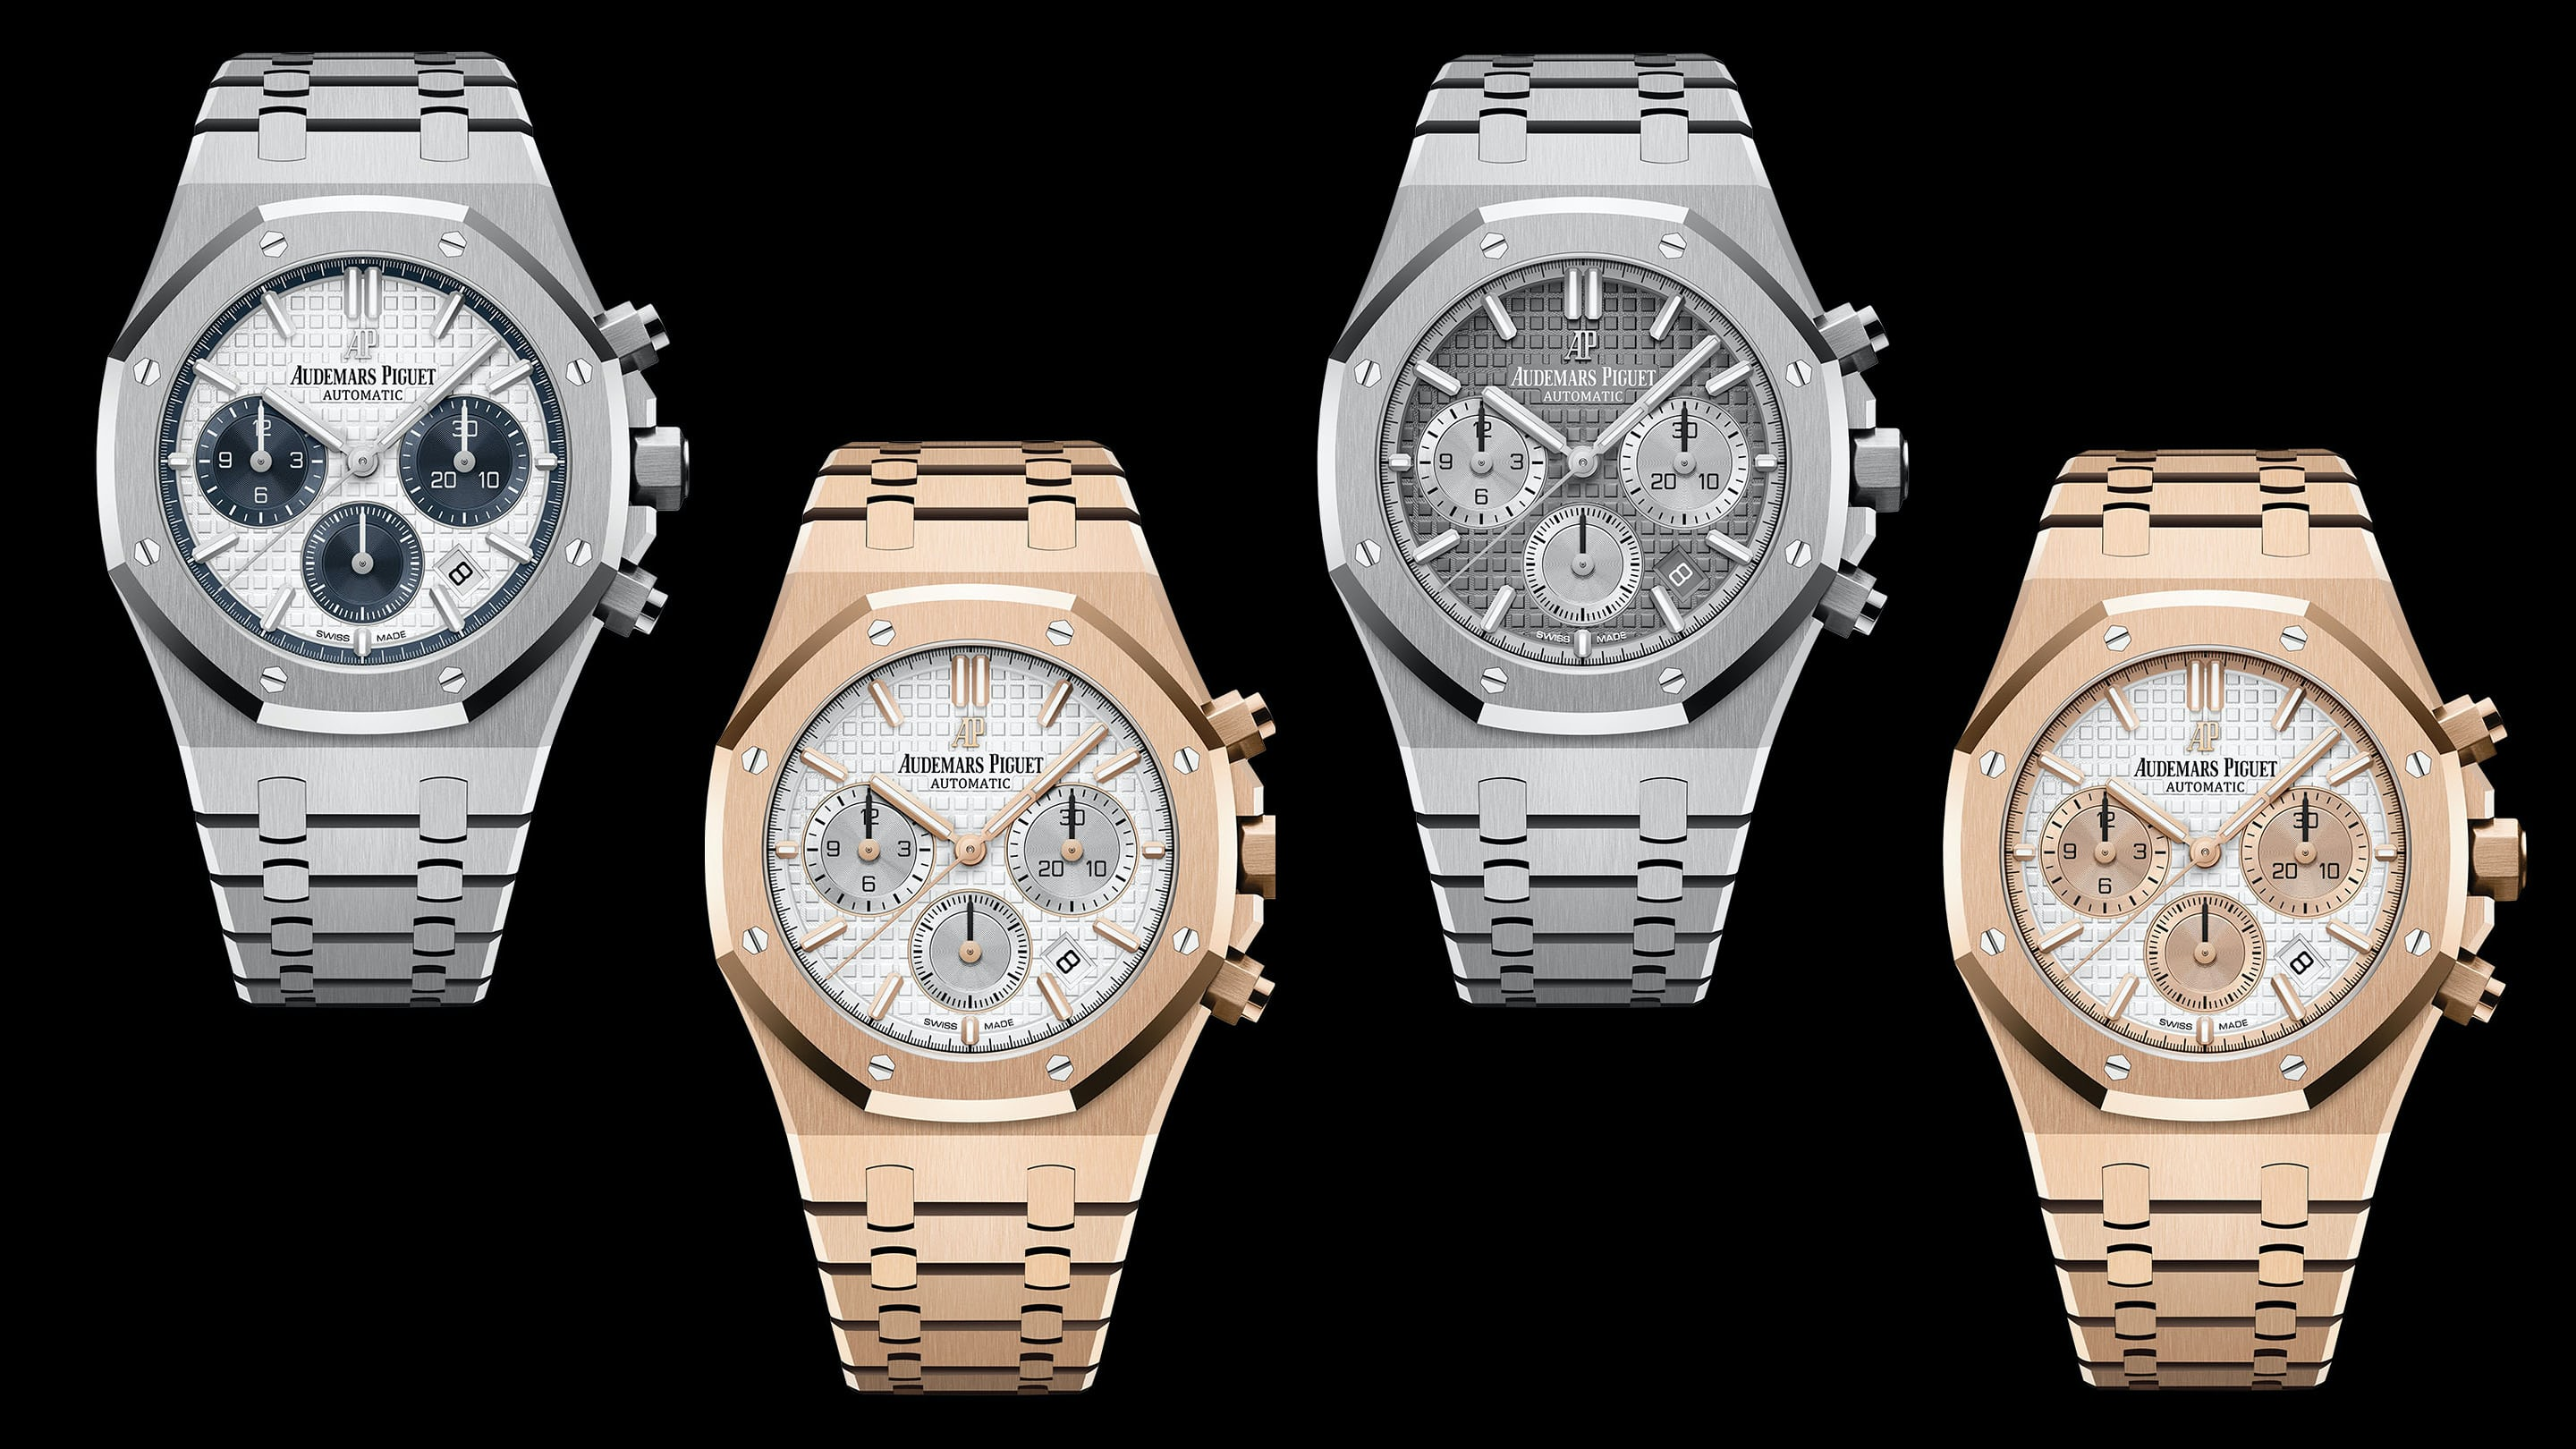 4376edfb5bd02 Introducing  The Audemars Piguet Royal Oak Chronograph In 38mm ...